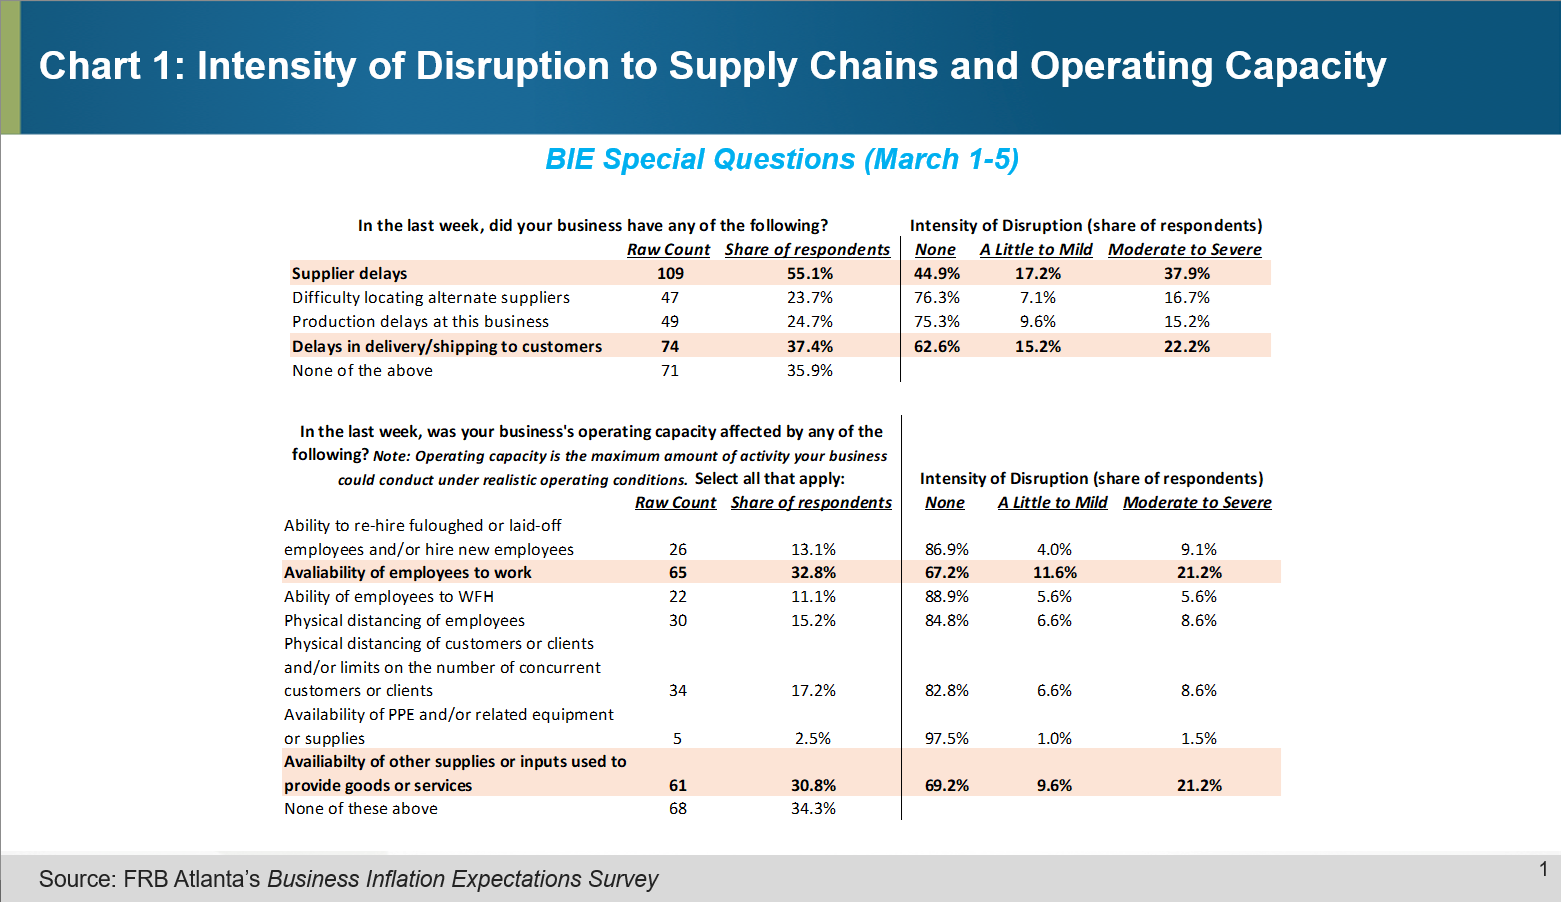 Chart 1 of 4: Intensity of Disruption to Supply Chains and Operating Capacity